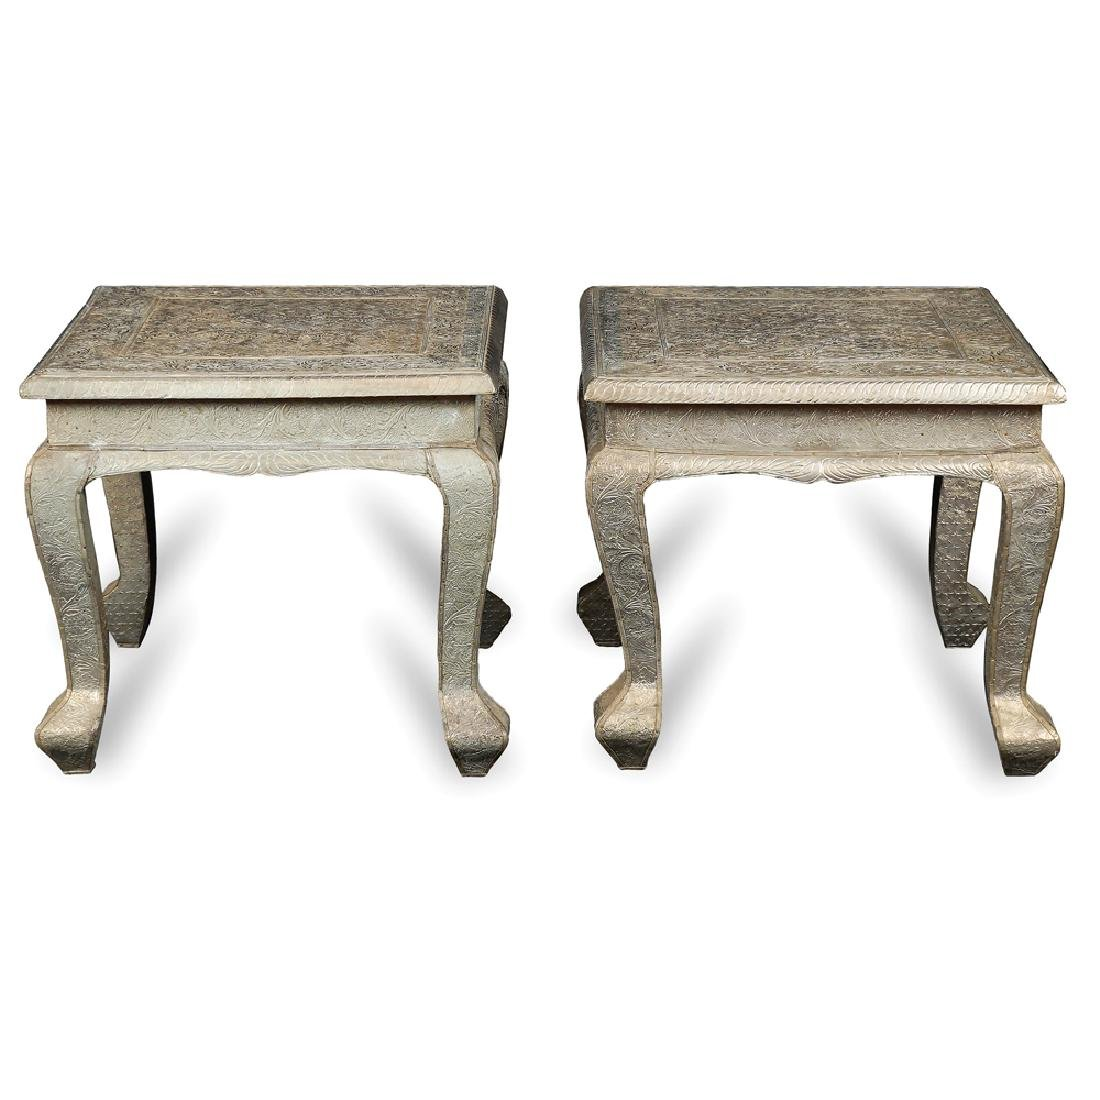 A pair of wooden tables Oriental manifacture 20th